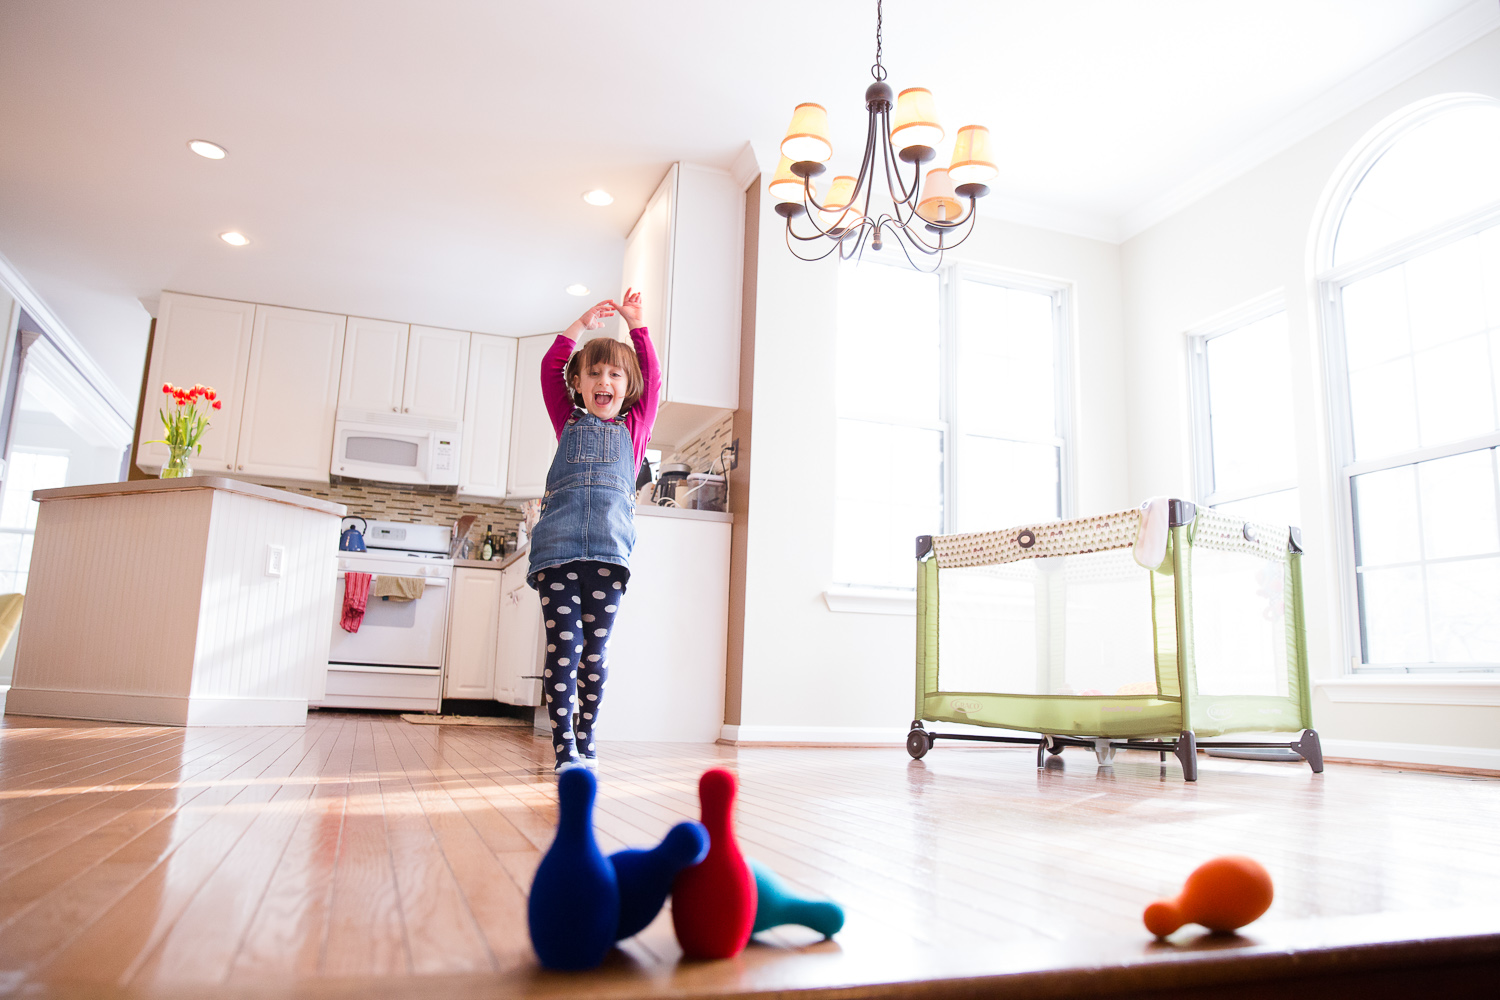 Little girl plays ball in her home in Maryland.